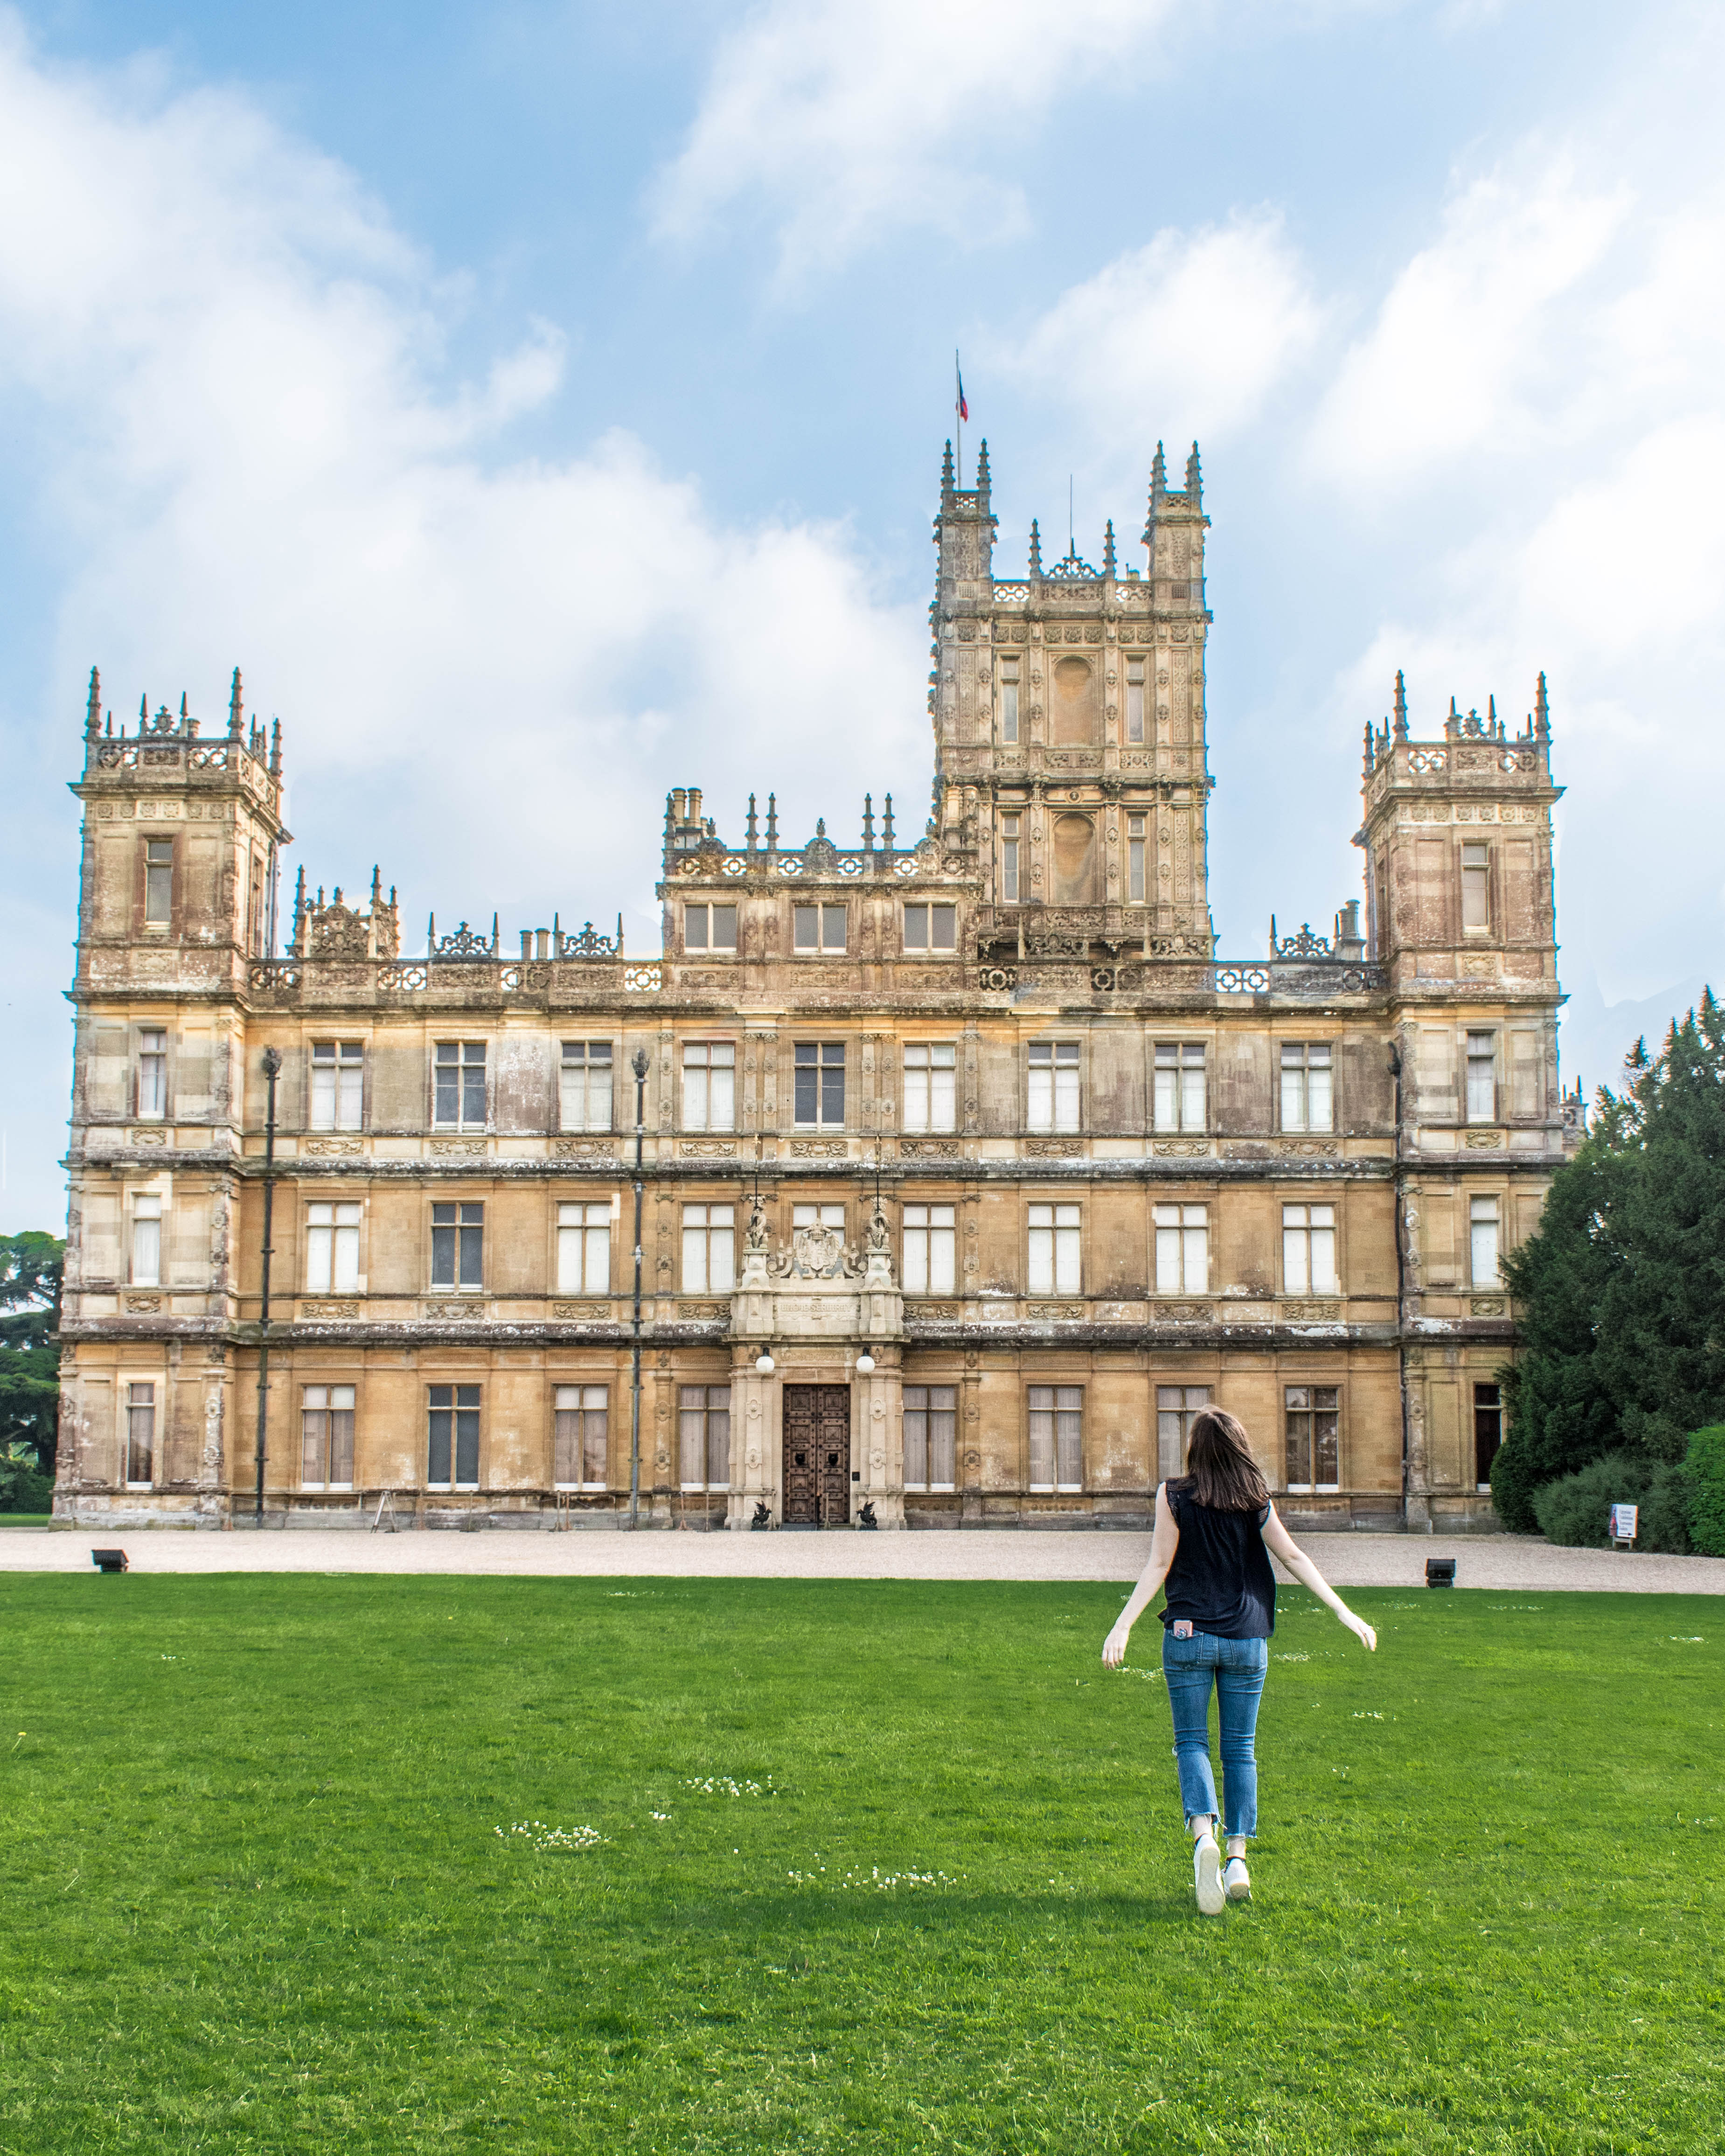 Communication on this topic: Downton Abbey is going on tour, downton-abbey-is-going-on-tour/